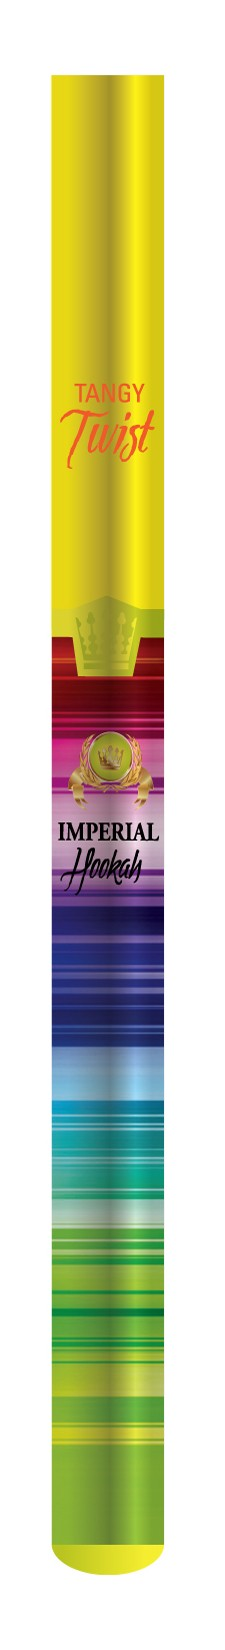 Imperial Hookah: Tangy Twist : 600 Puffs